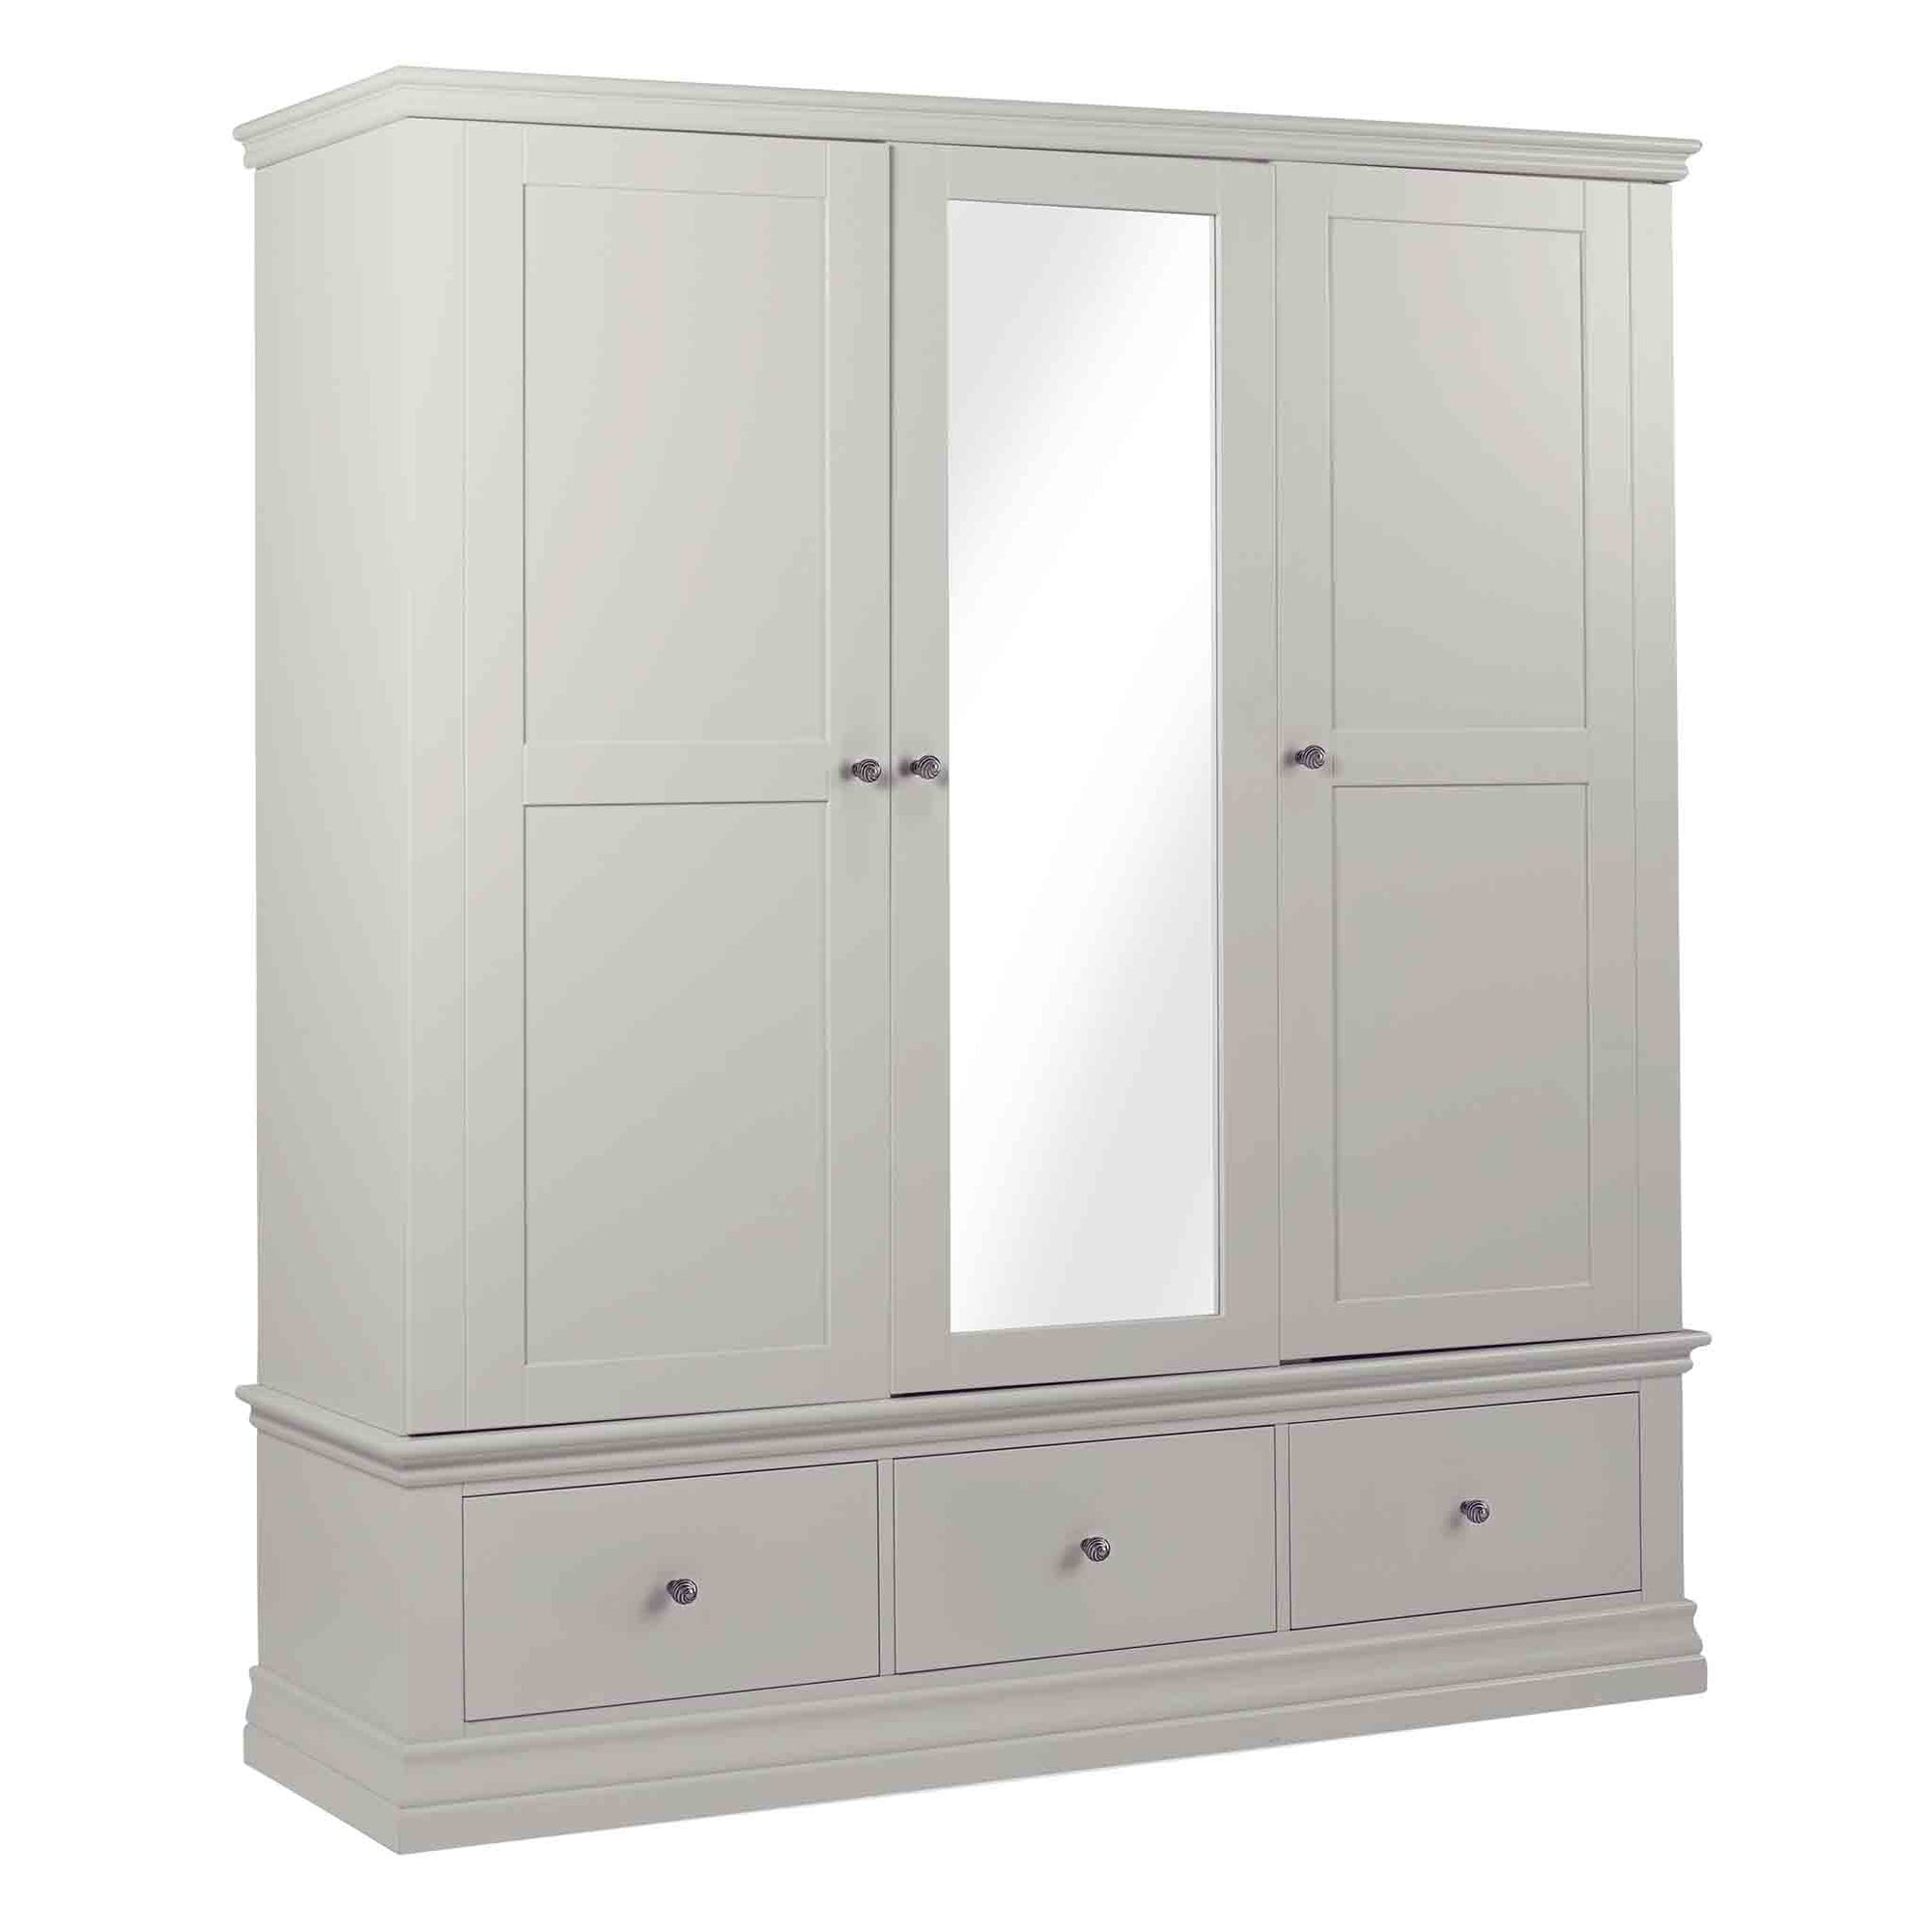 Melrose Cotton White Triple Wardrobe from Roseland Furniture